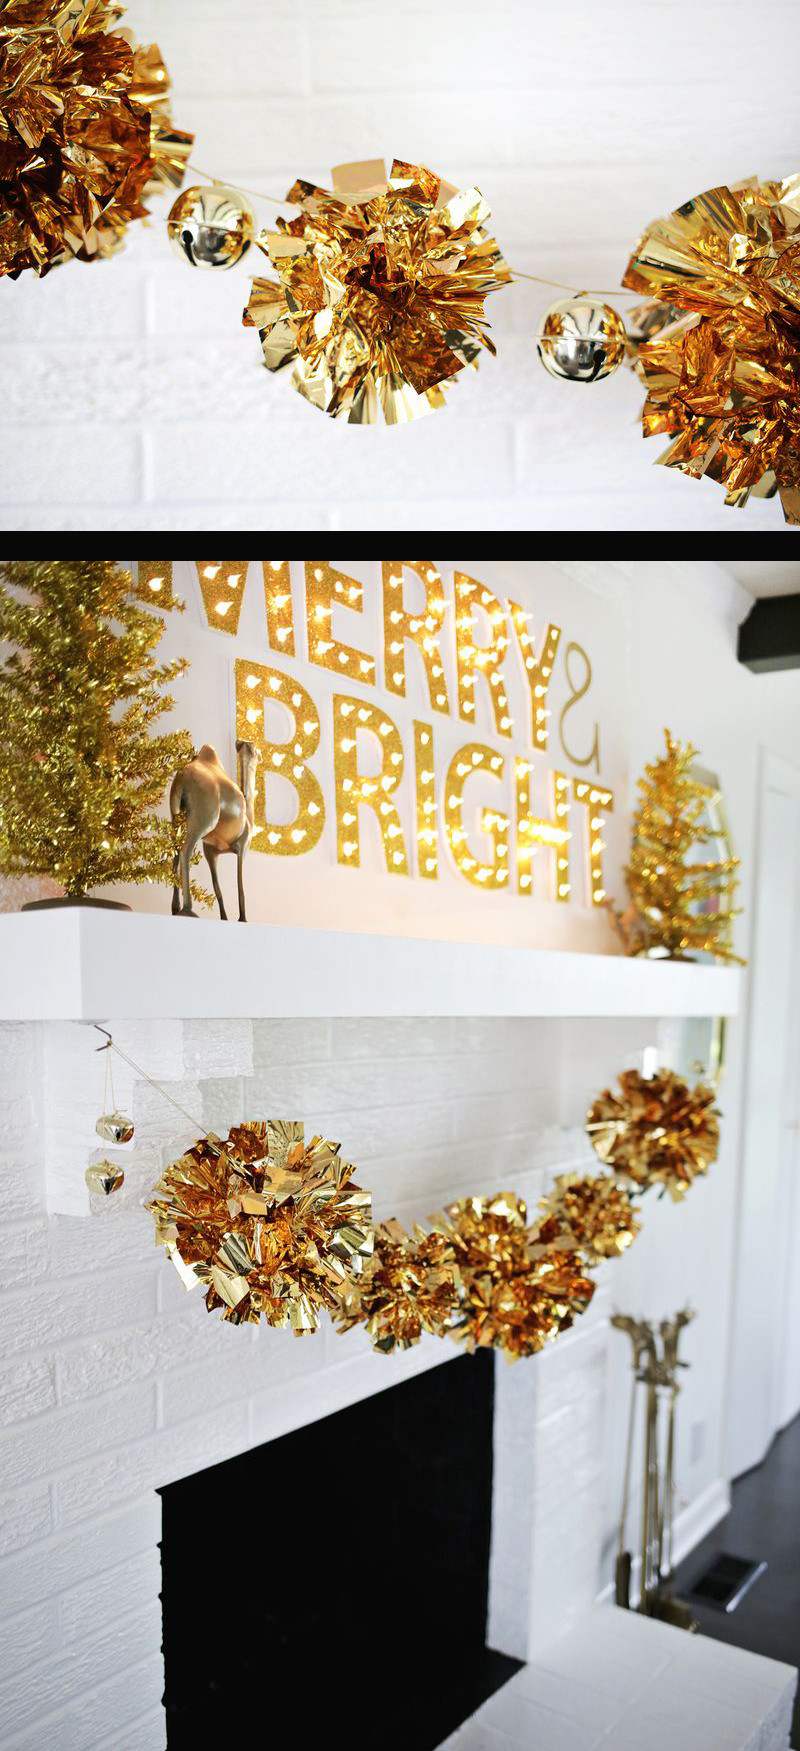 Best ideas about DIY Christmas Garland Ideas . Save or Pin 50 Best DIY Christmas Garland Decorating Ideas for 2017 Now.